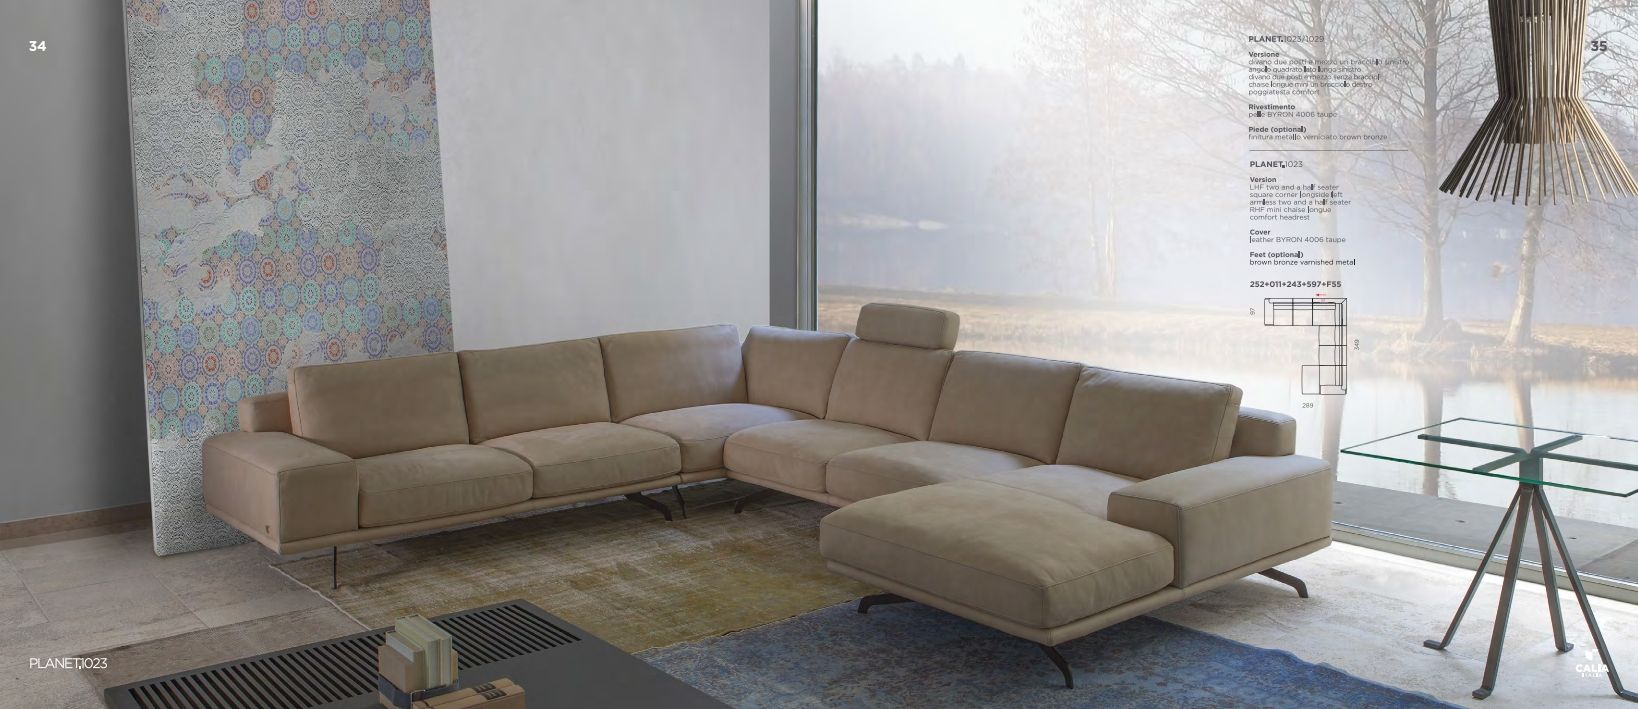 Amazing Sectional Sofas Sectional Sofa Calia Italia Planet 1023 Beatyapartments Chair Design Images Beatyapartmentscom